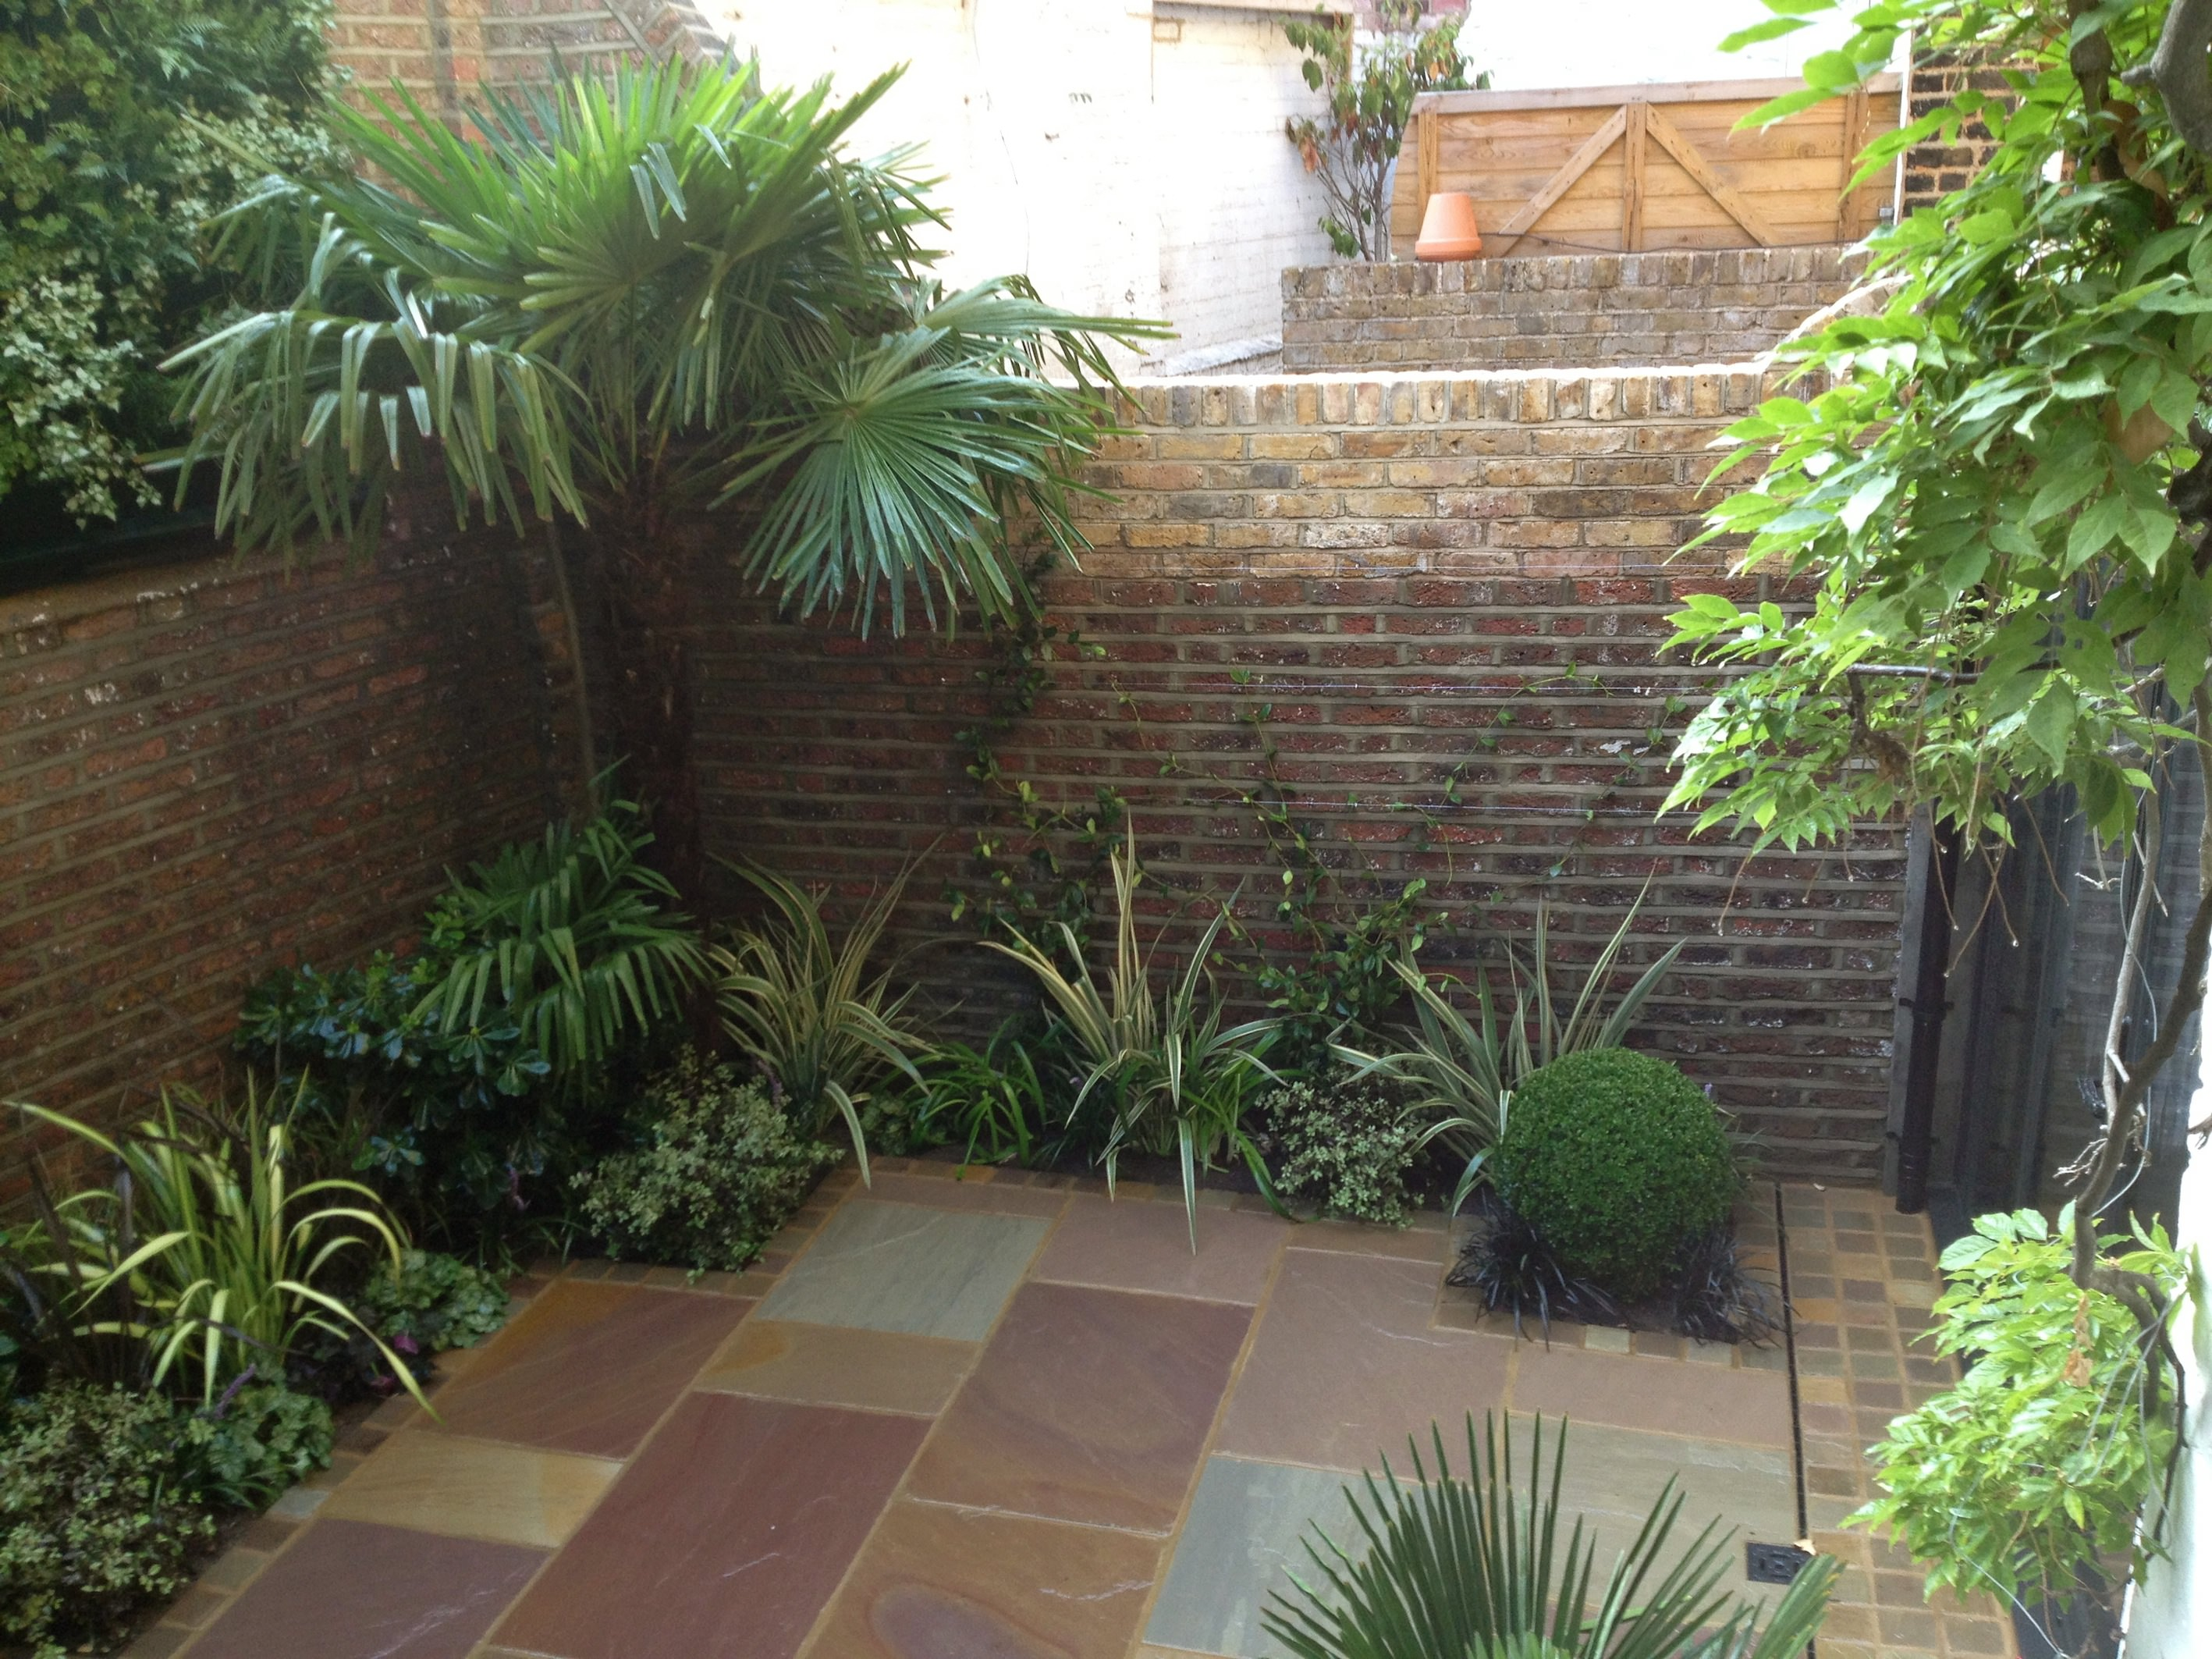 Low maintenance garden designs garden club london for Very small garden design ideas uk